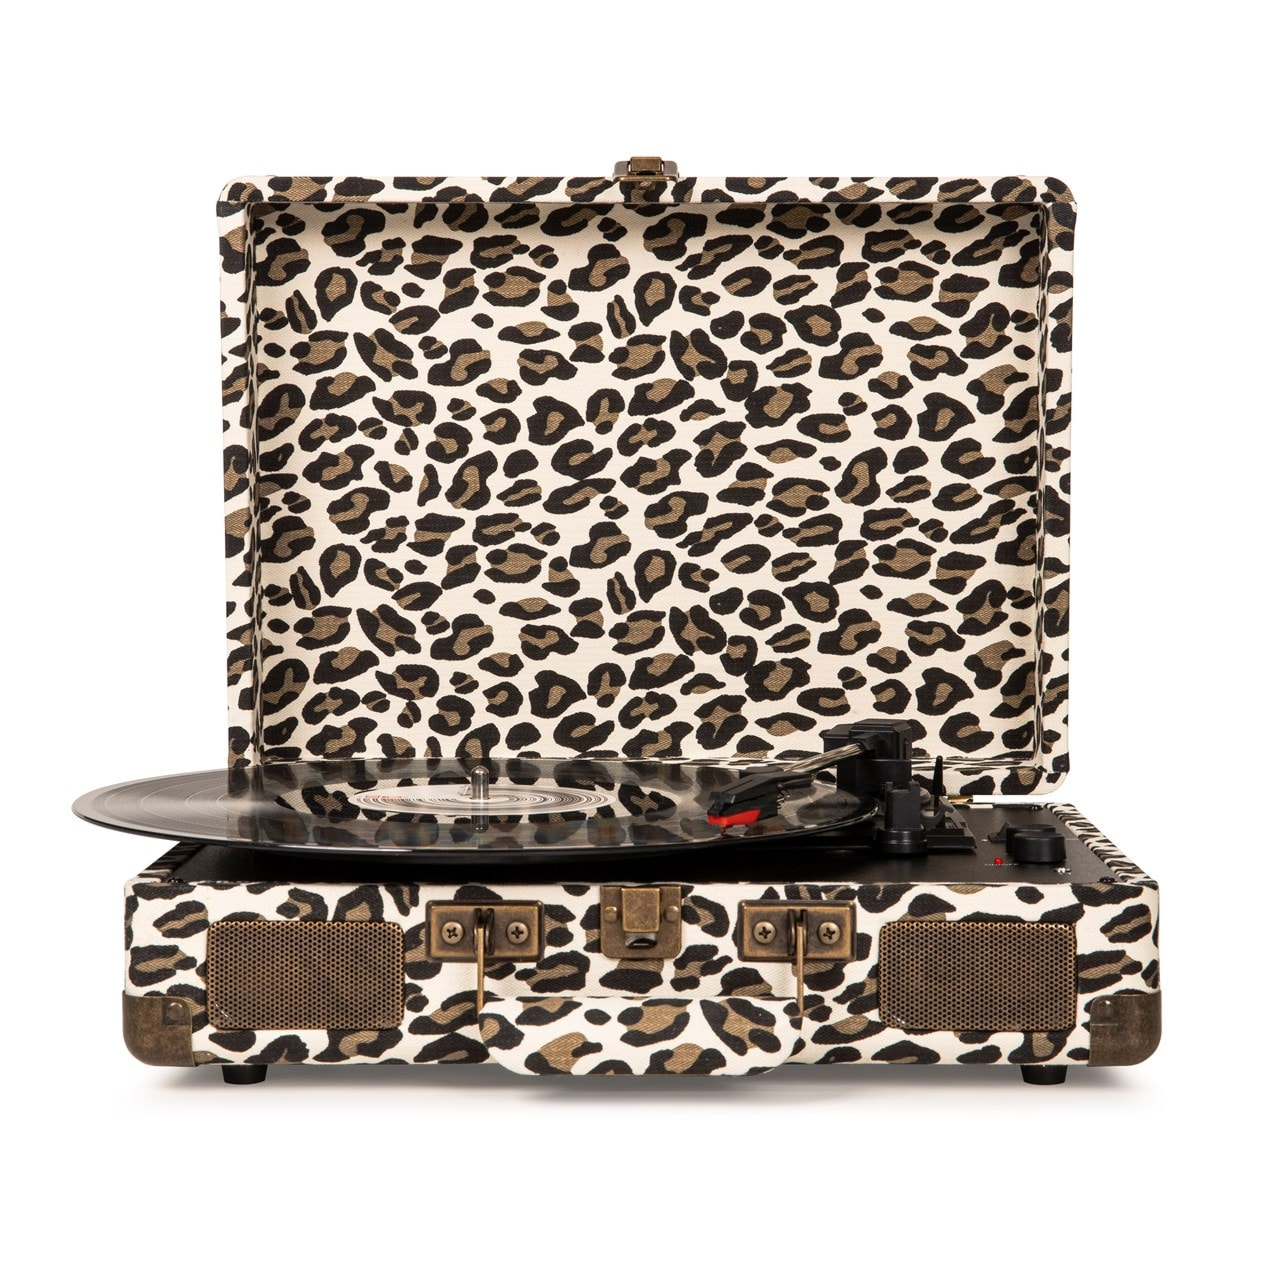 Crosley Cruiser Deluxe Leopard Turntable - 2